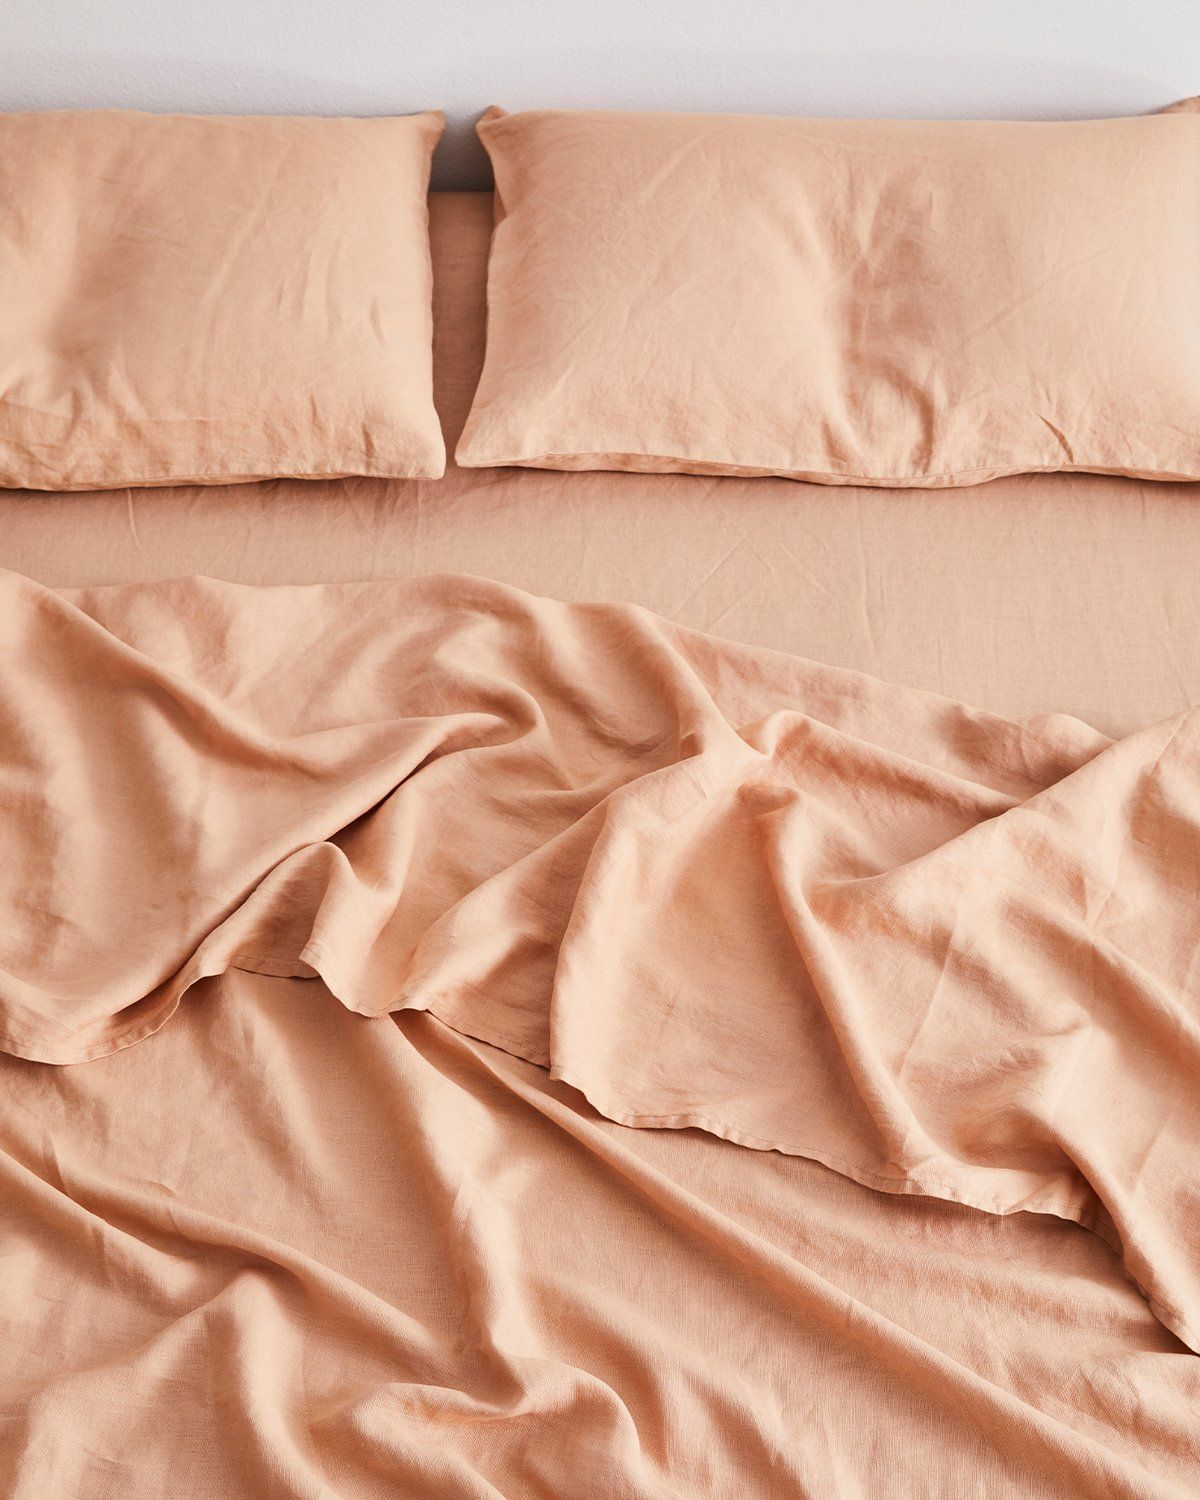 Rust 100 Flax Linen Bedding Set In 2020 Linen Sheet Sets Bed Linen Sets Linen Sheets